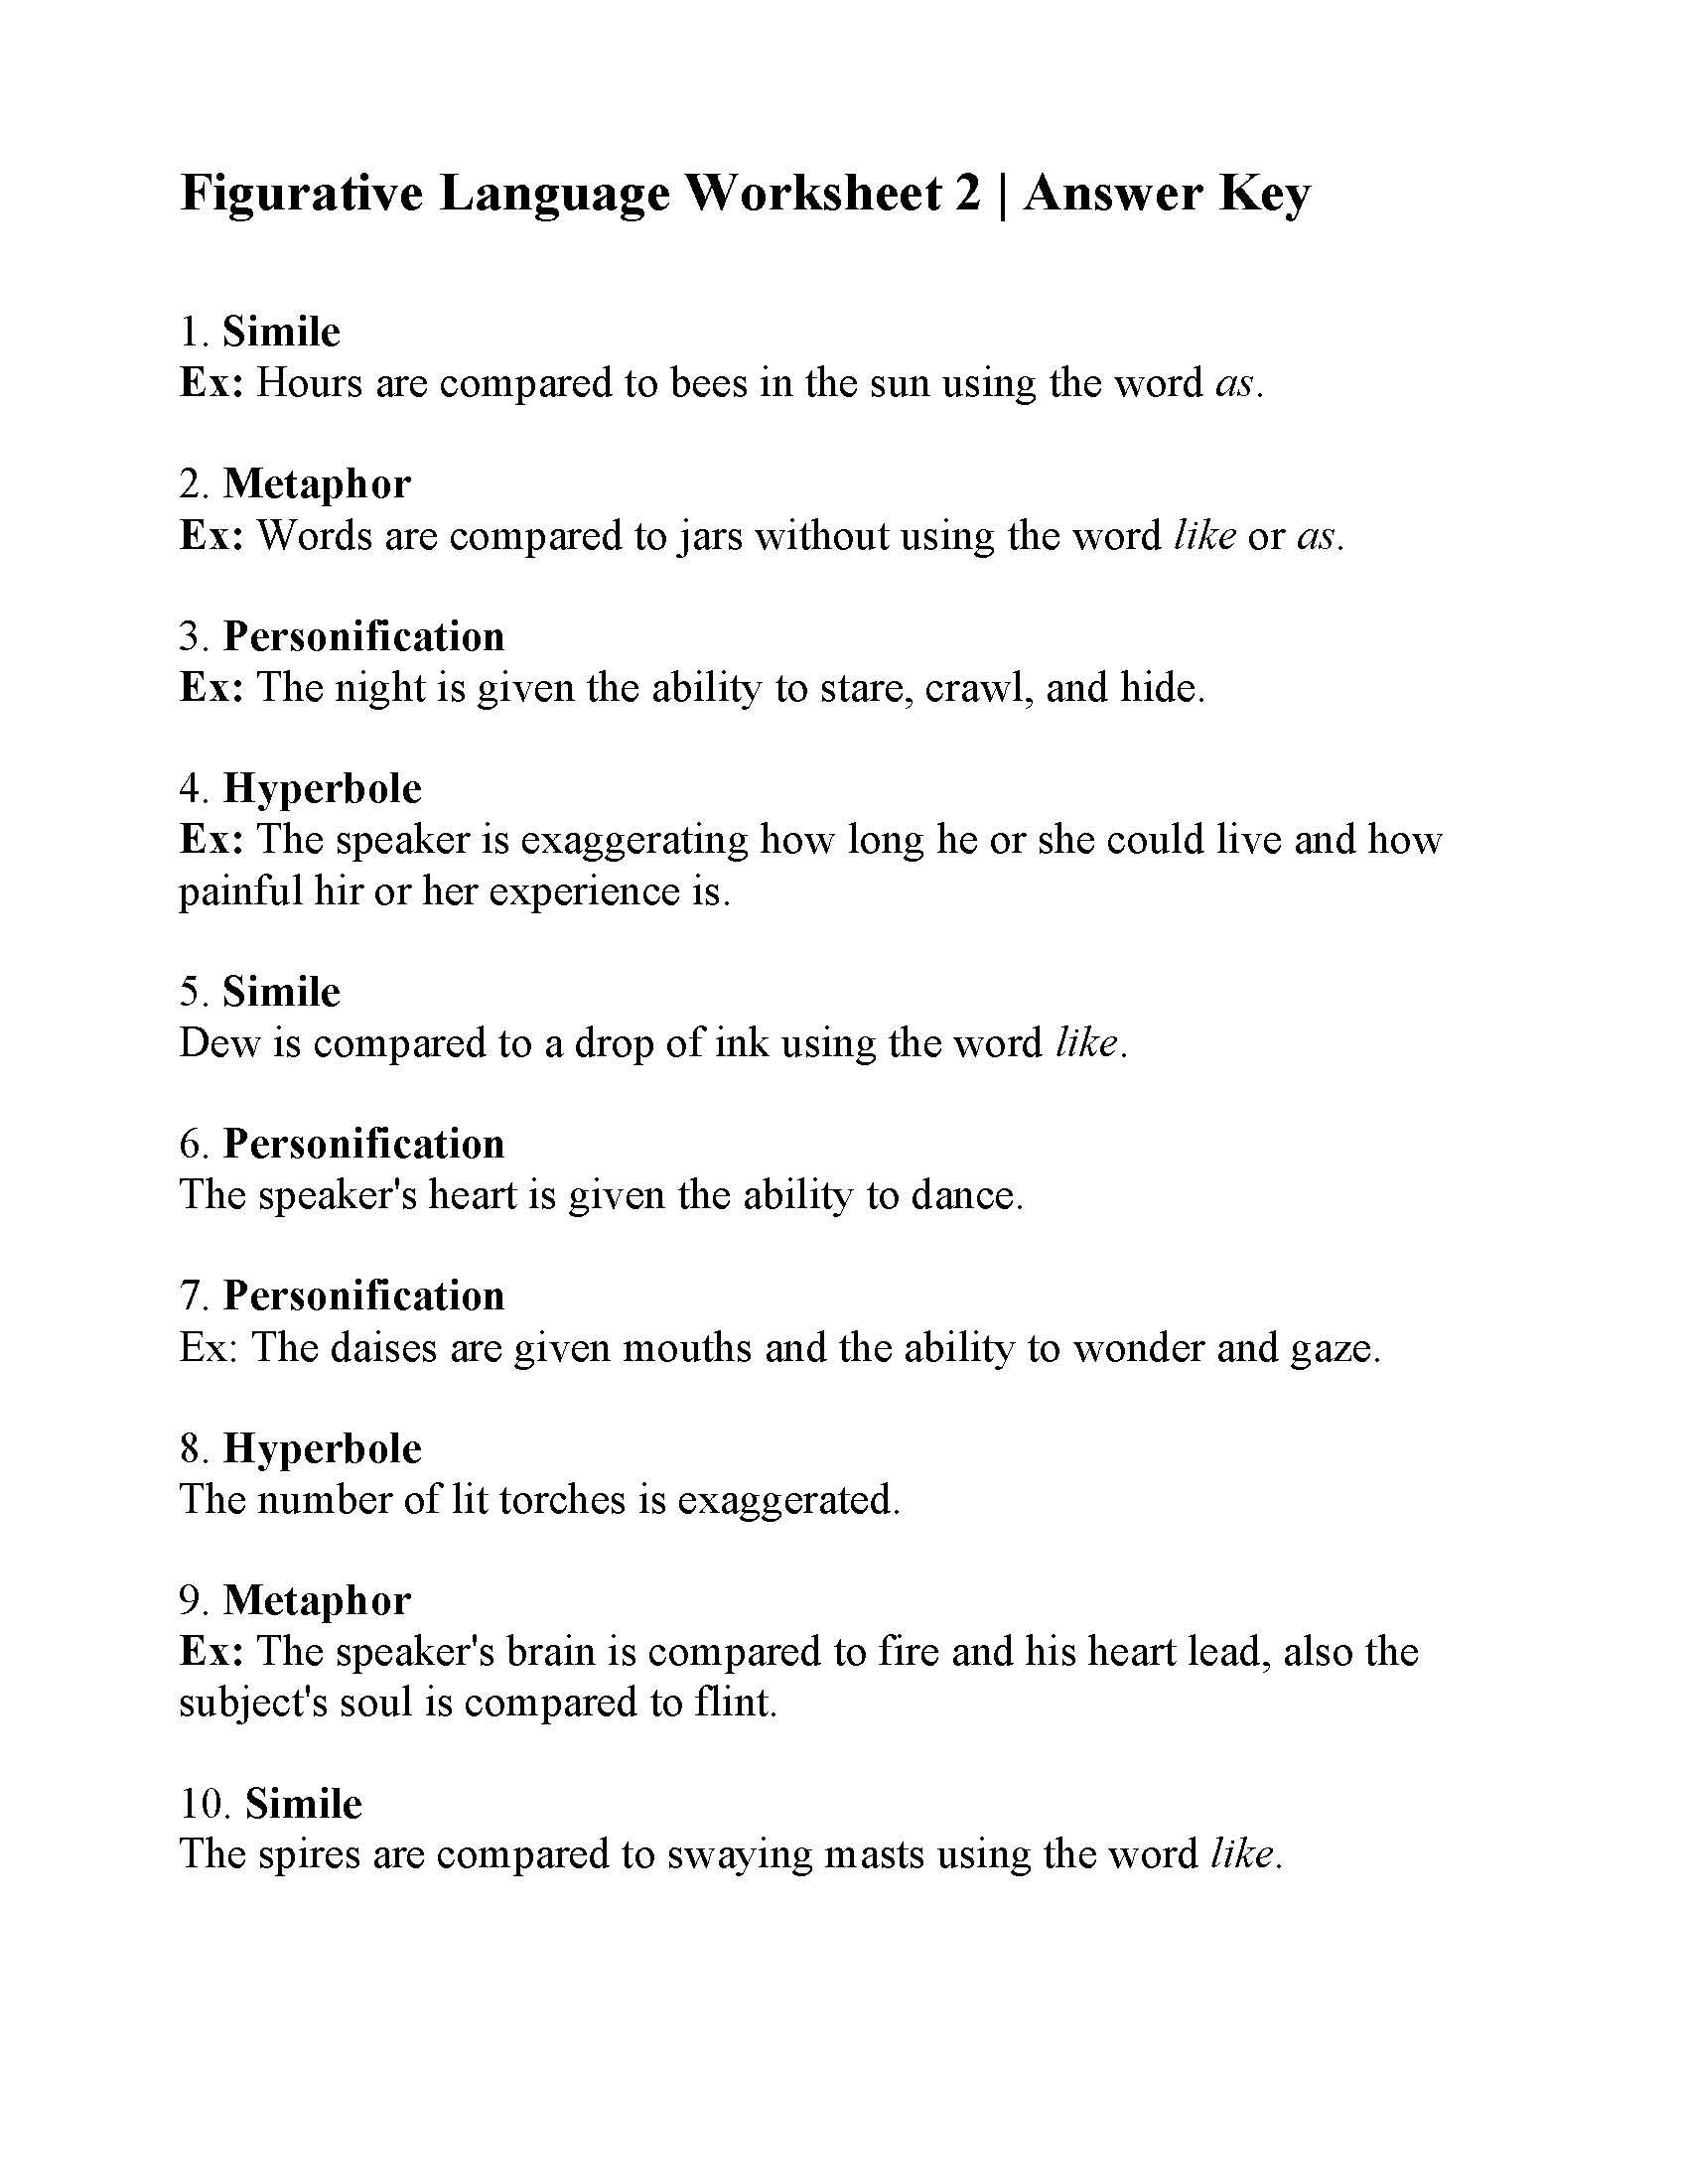 This Is The Answer Key For The Figurative Language Worksheet 2 Figurative Language Worksheet Language Worksheets Figurative Language